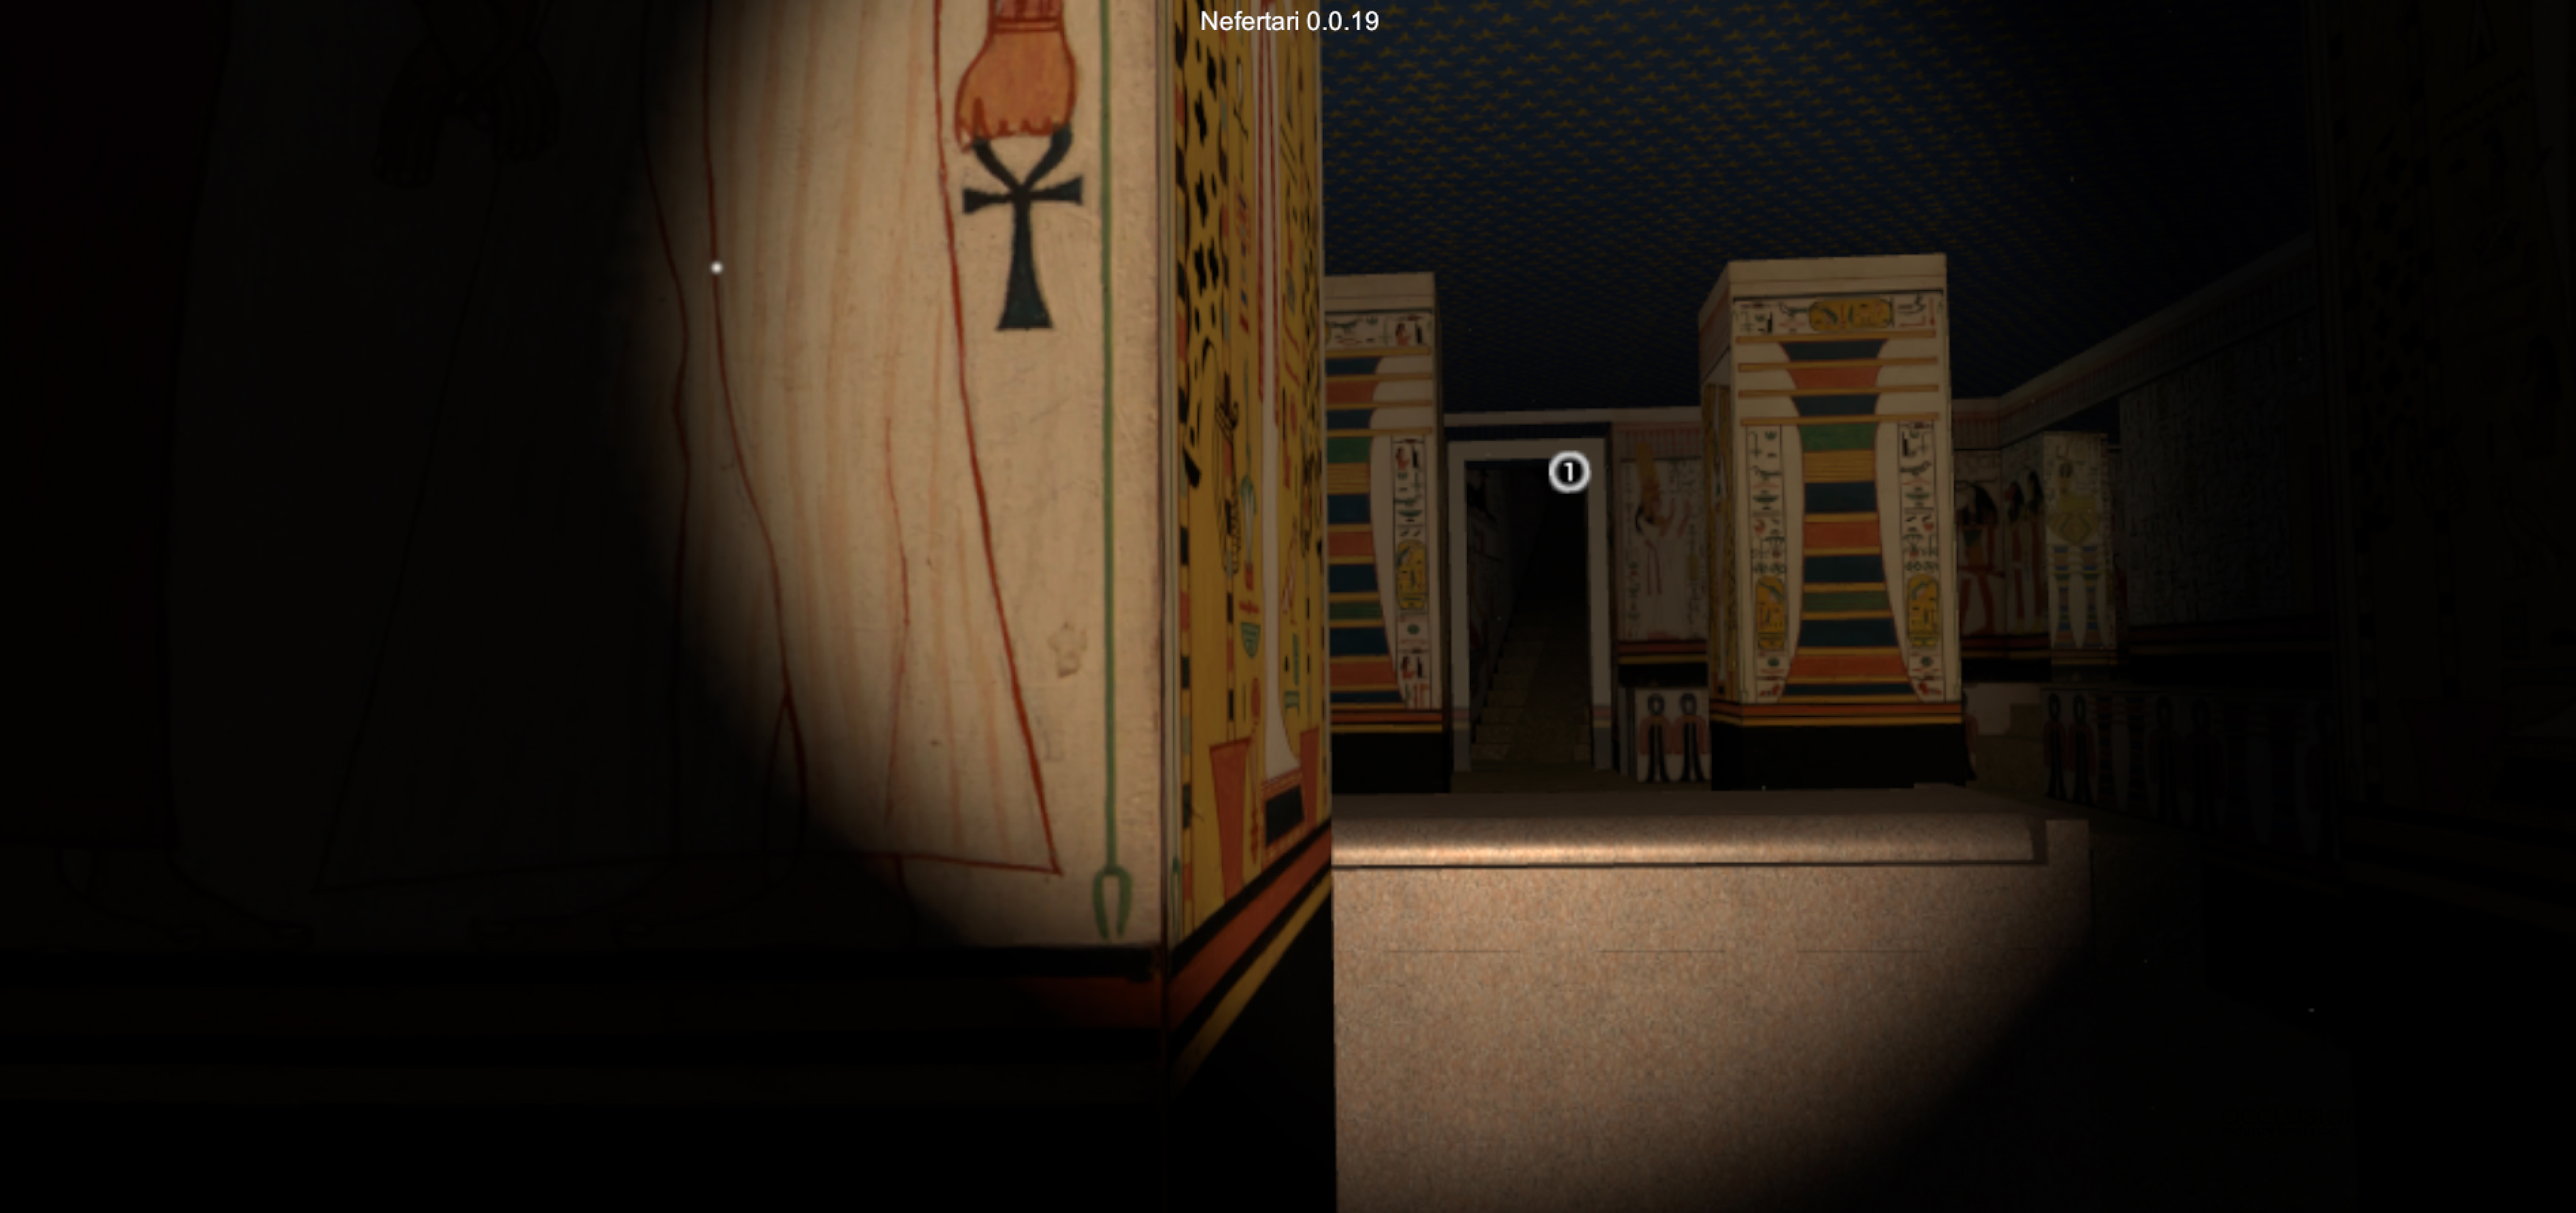 The Tomb of Nefertari, a VR Experience Prototype